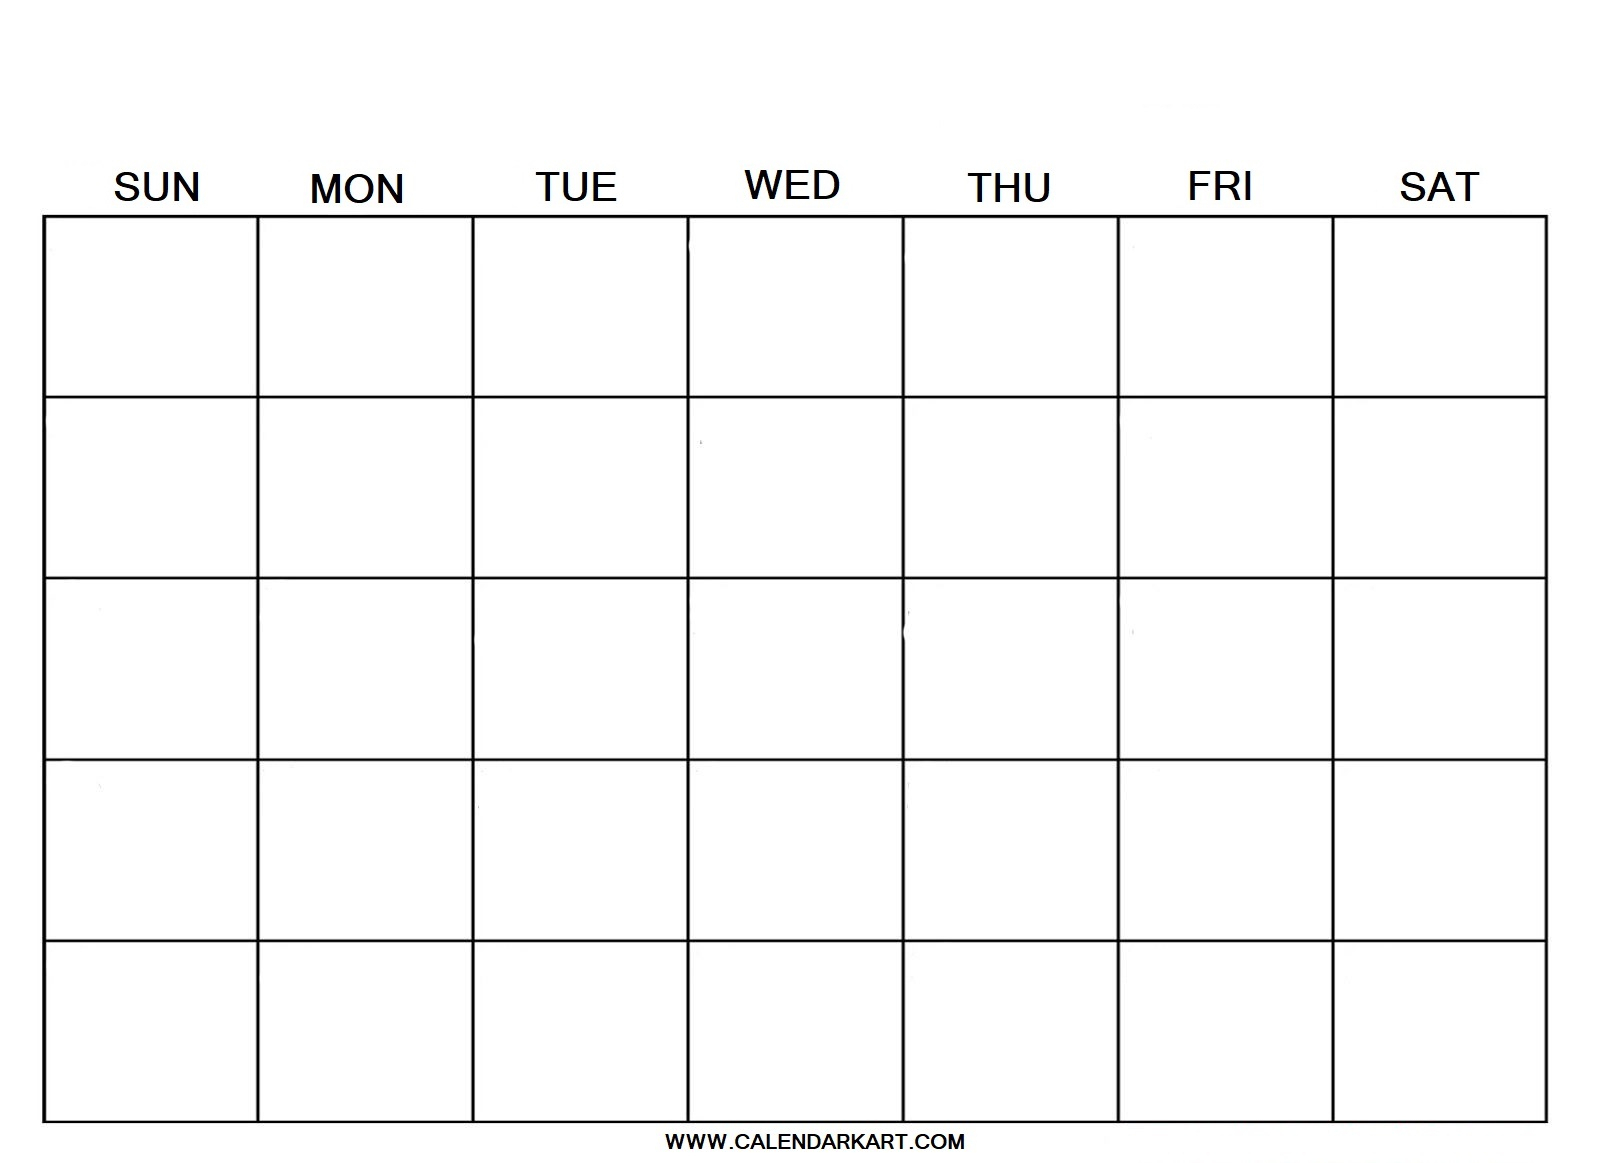 Blank Calendar  Calendarkart in Printable Calendar 2020 With Time Slots